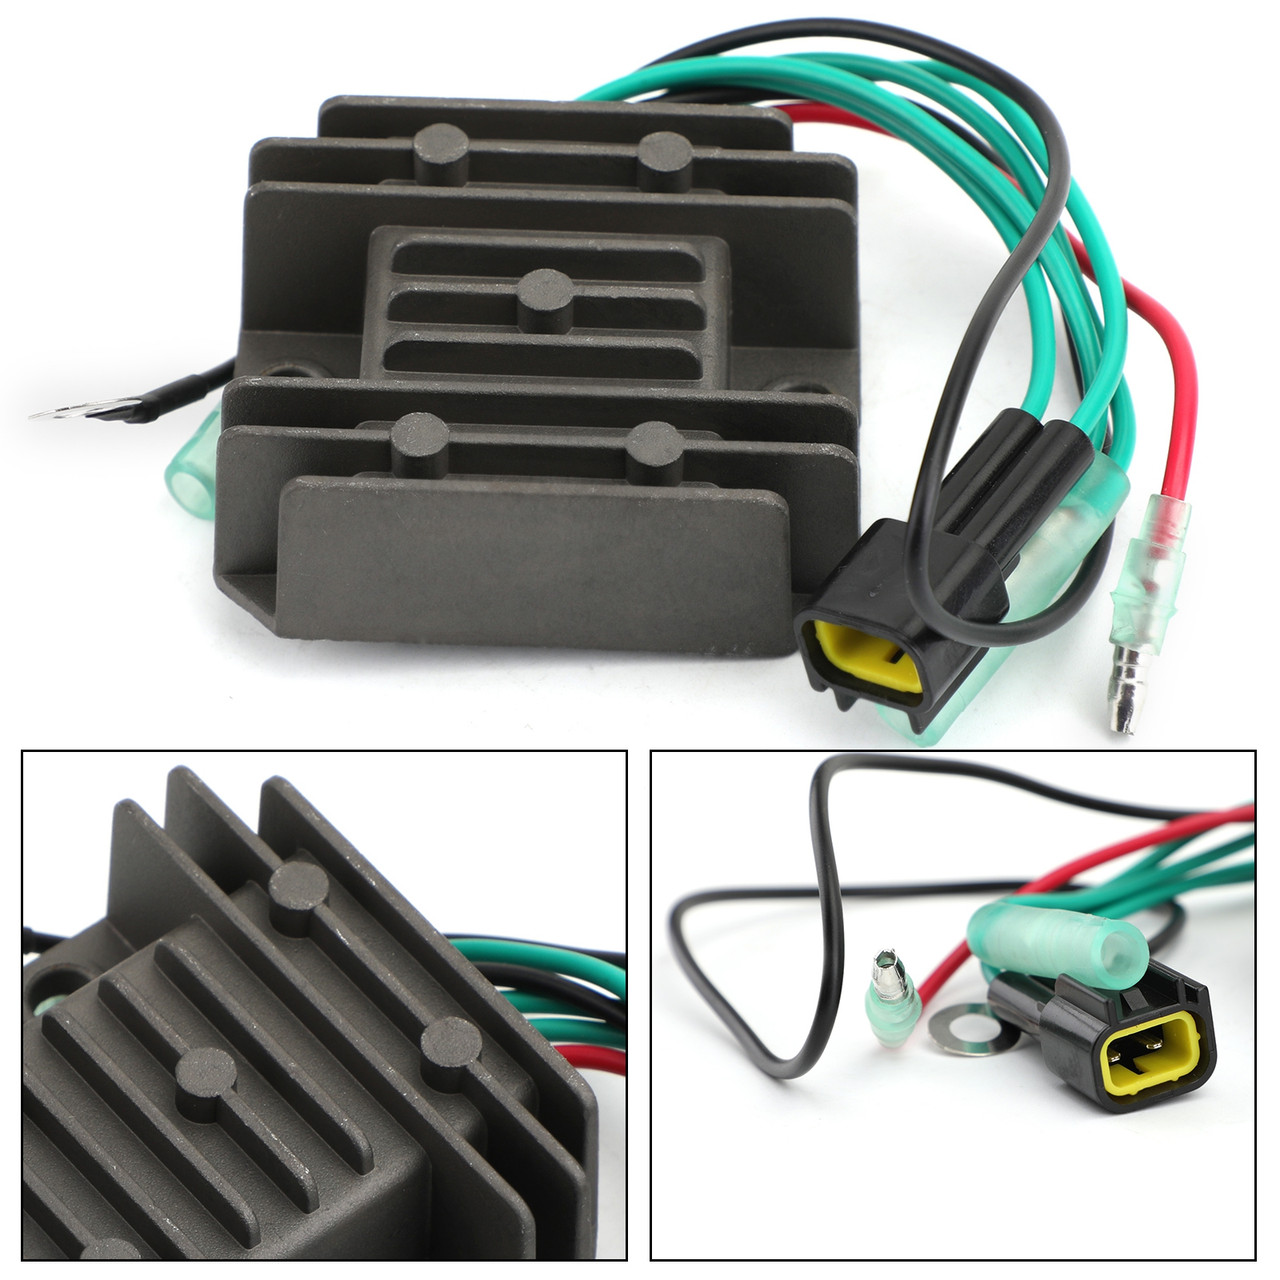 Voltage Regulator Rectifier for Yamaha 75C 00-16 80A 00-05 90 00-10 90A 00-17 C90 00-01 outboard 6H0-81960-10